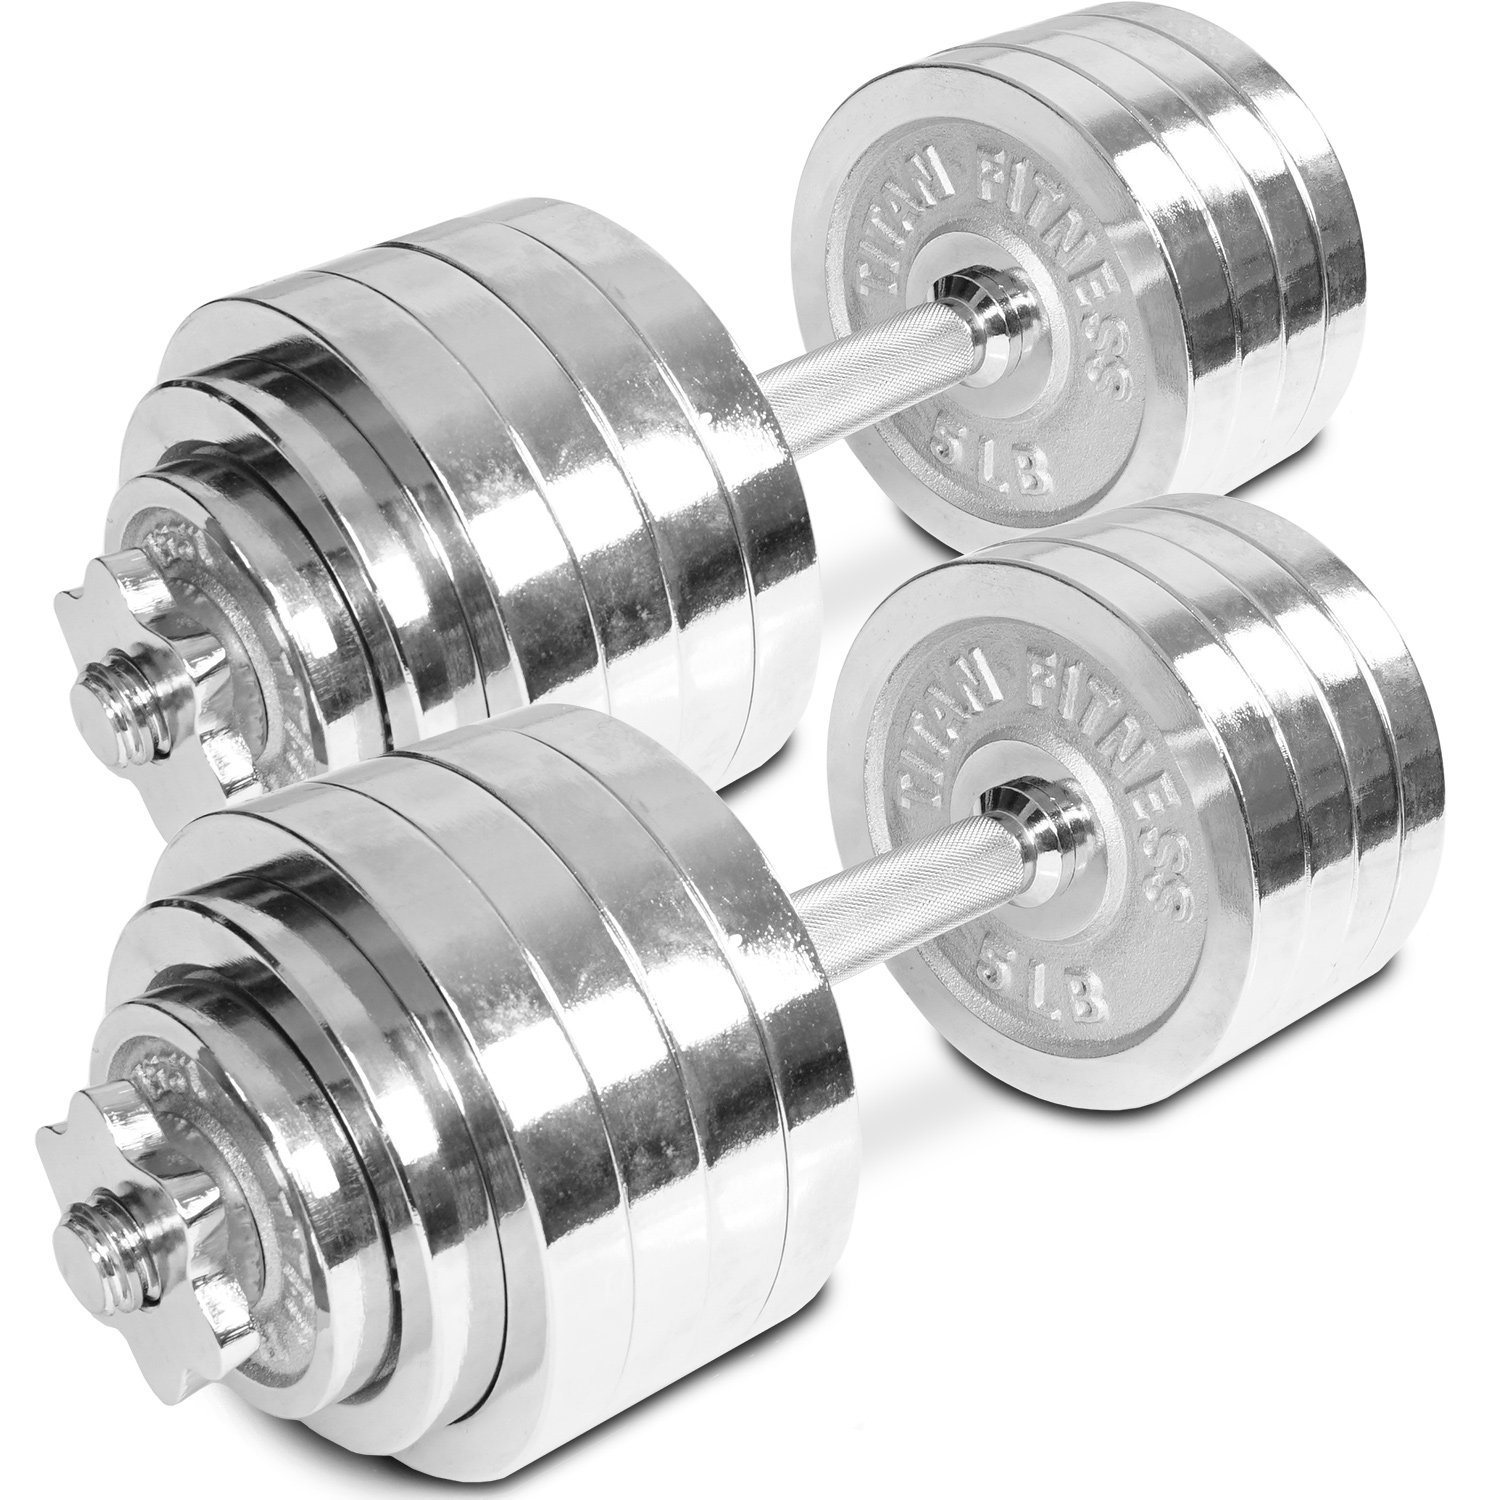 Pair of Adjustable Chrome Dumbbells Weight 105 lb Total Weight by Titan Fitness